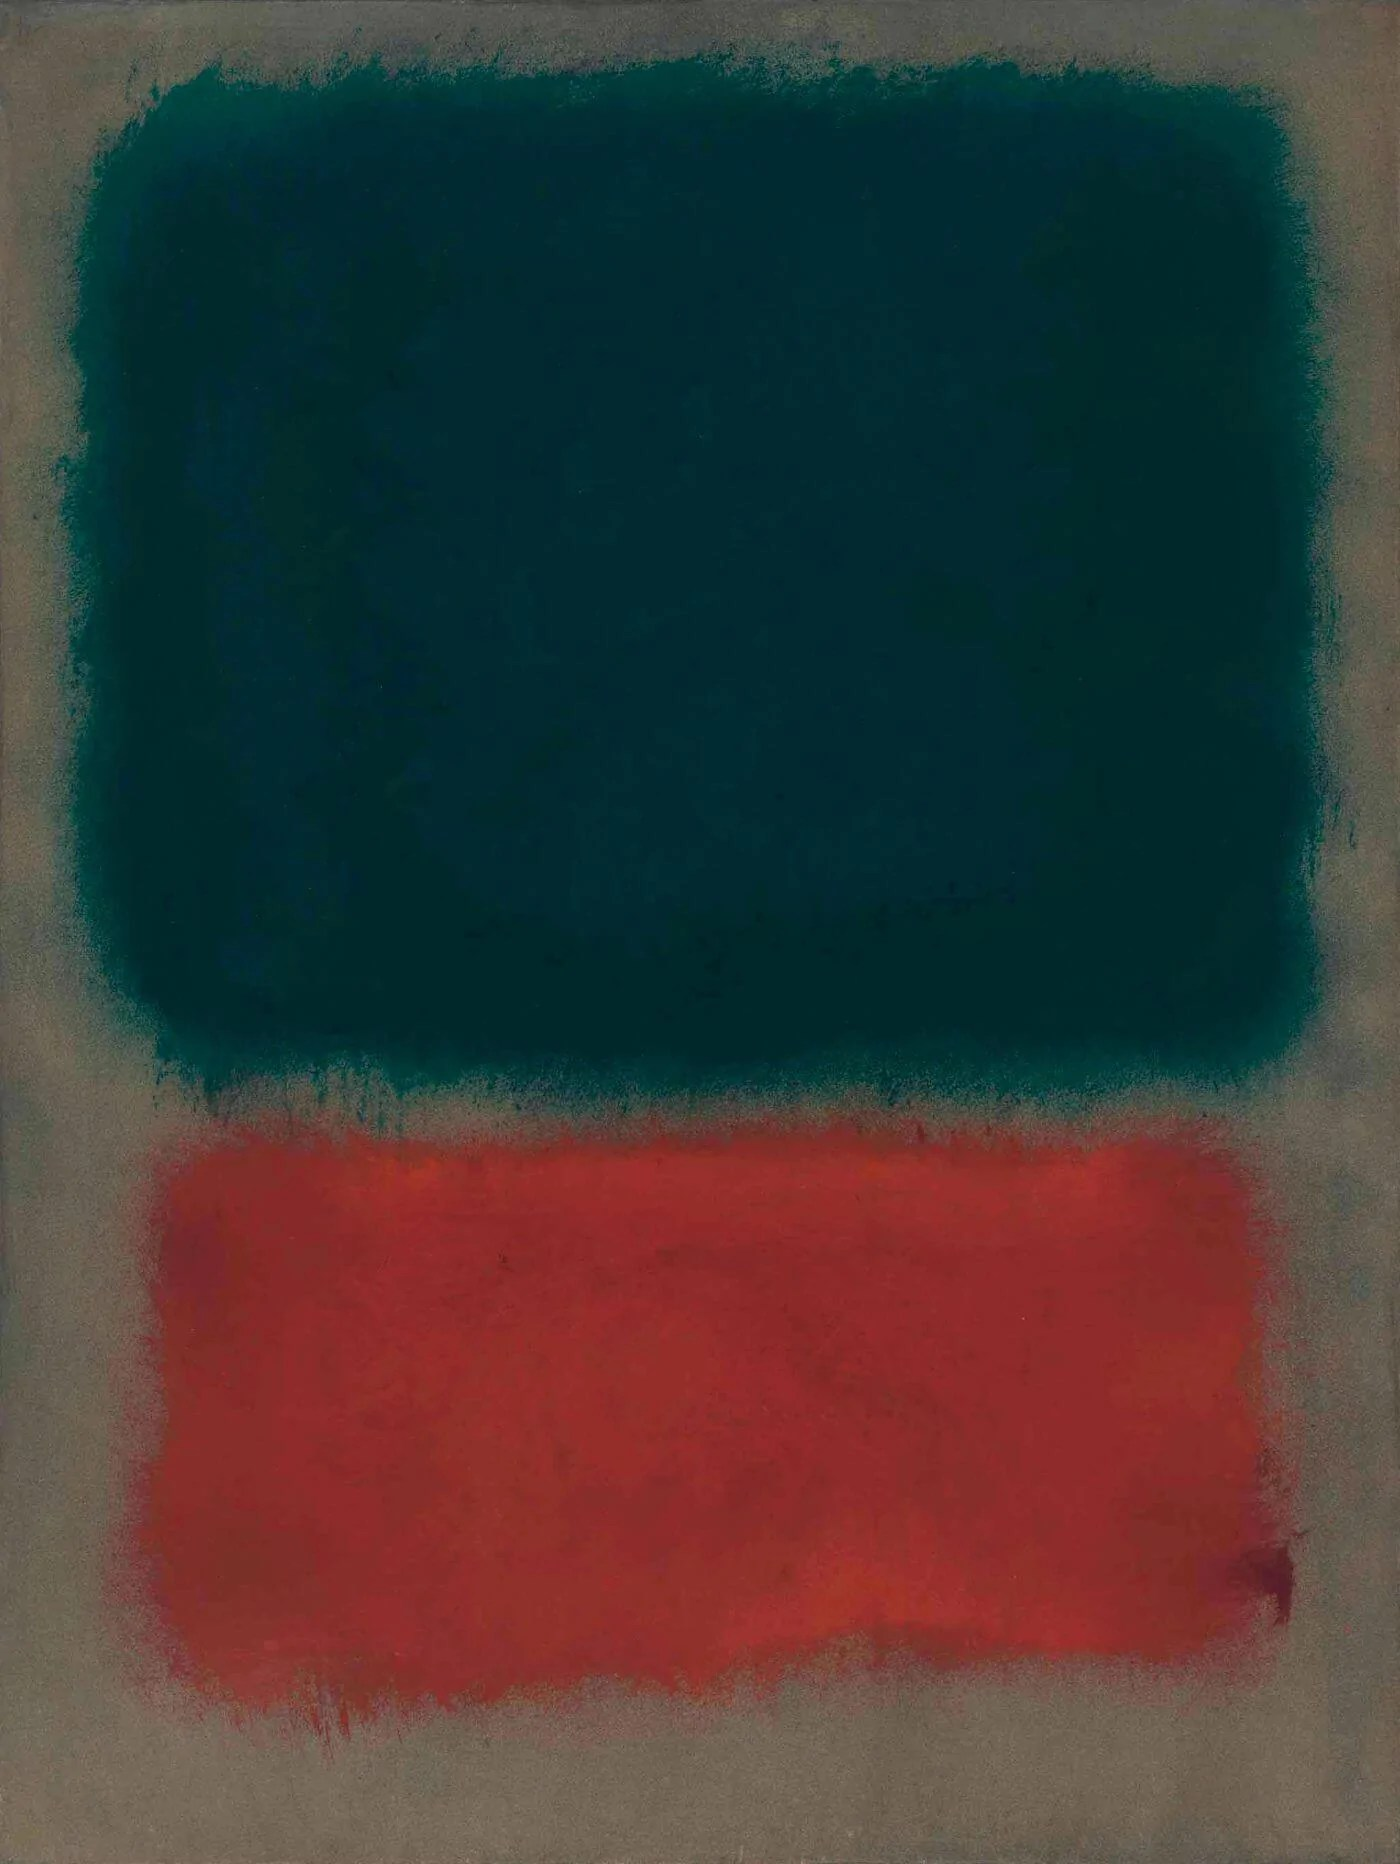 1960s untitled mark rothko painting posters